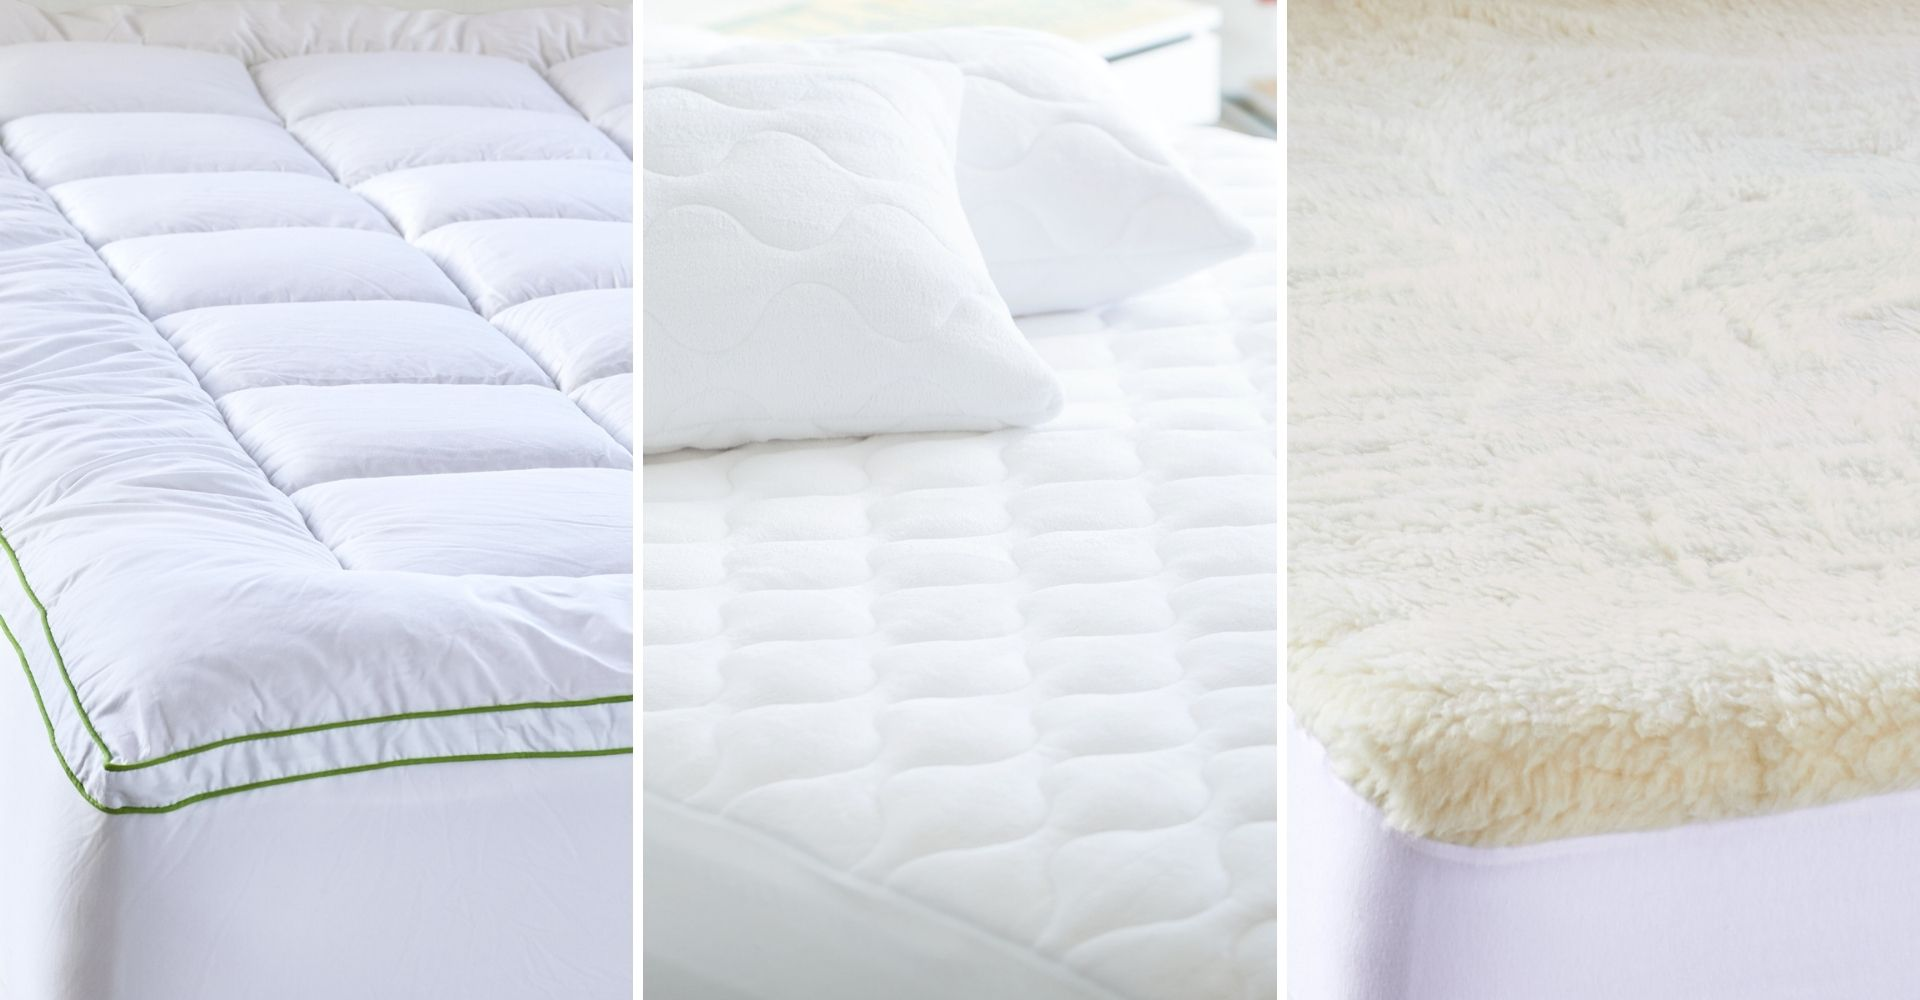 lorraine lea mattress topper protector and underlay for mattress